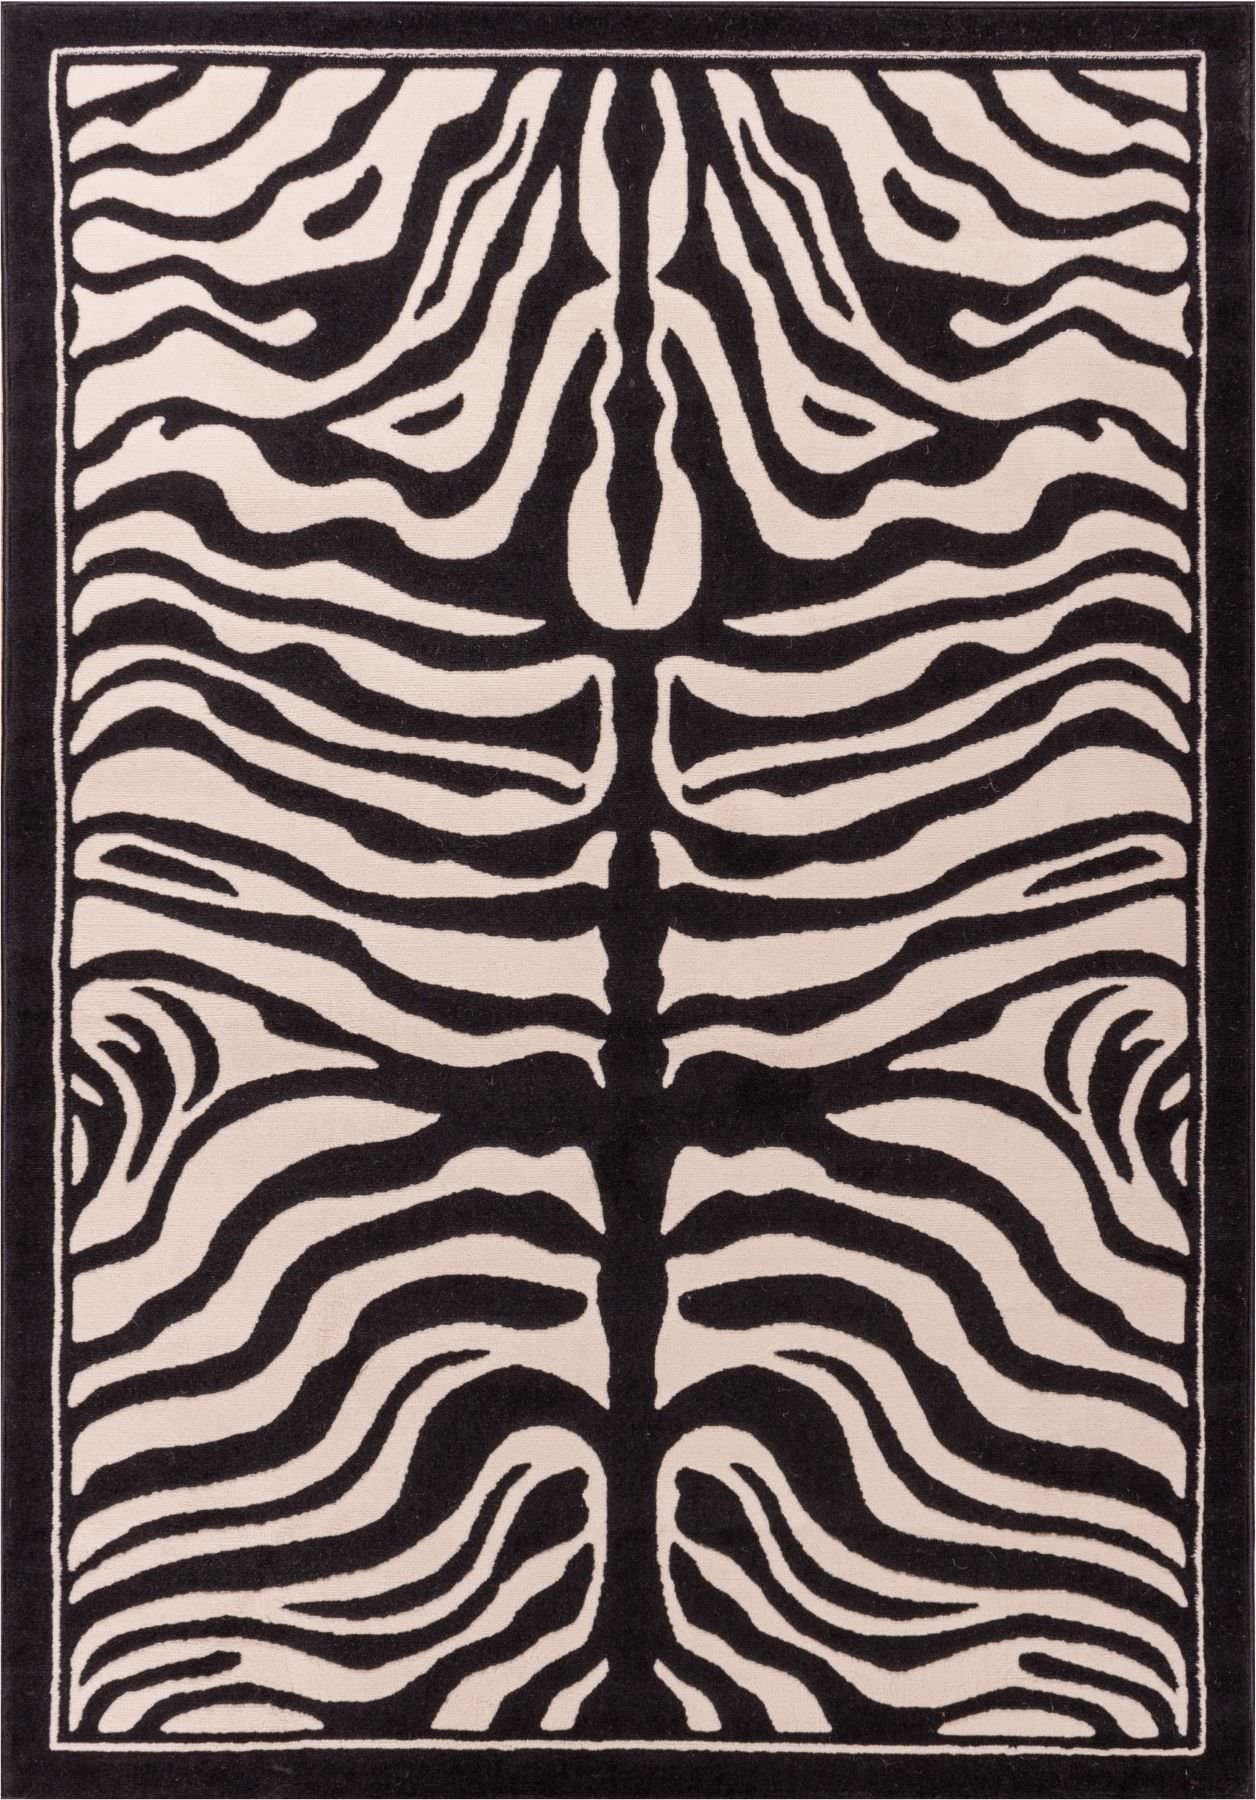 Modern Rugs Timeless Zebra Black and Beige Carving Animal Area Rug